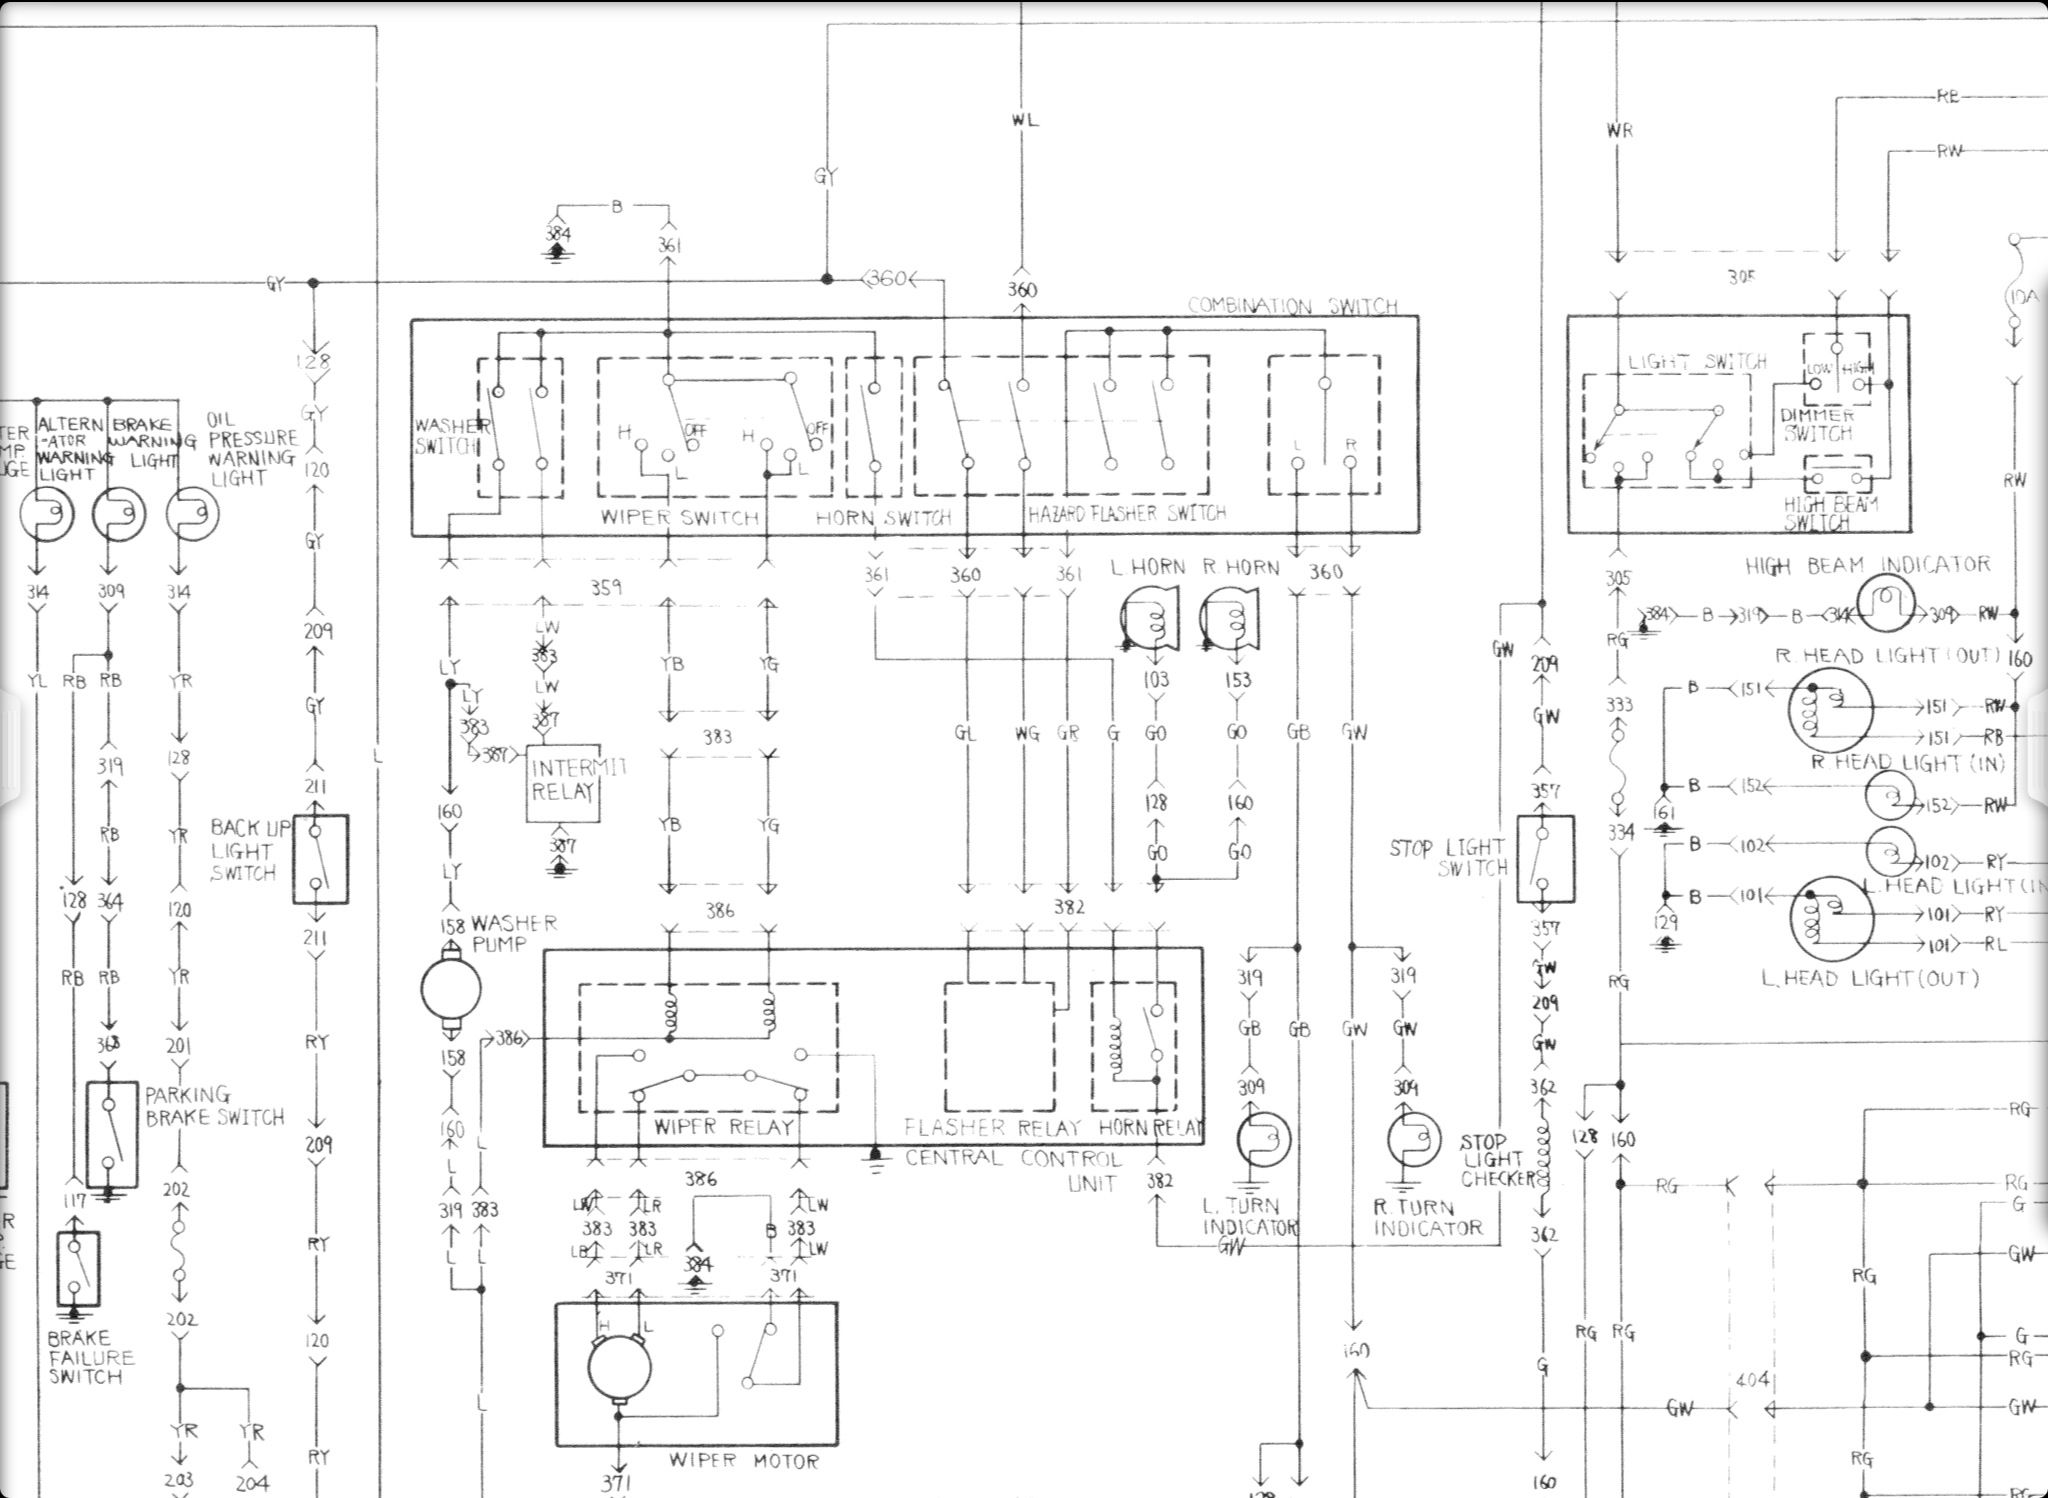 Rx4 register and records page 136 ausrotary rh ausrotary mazda 3 stereo wiring diagram 96